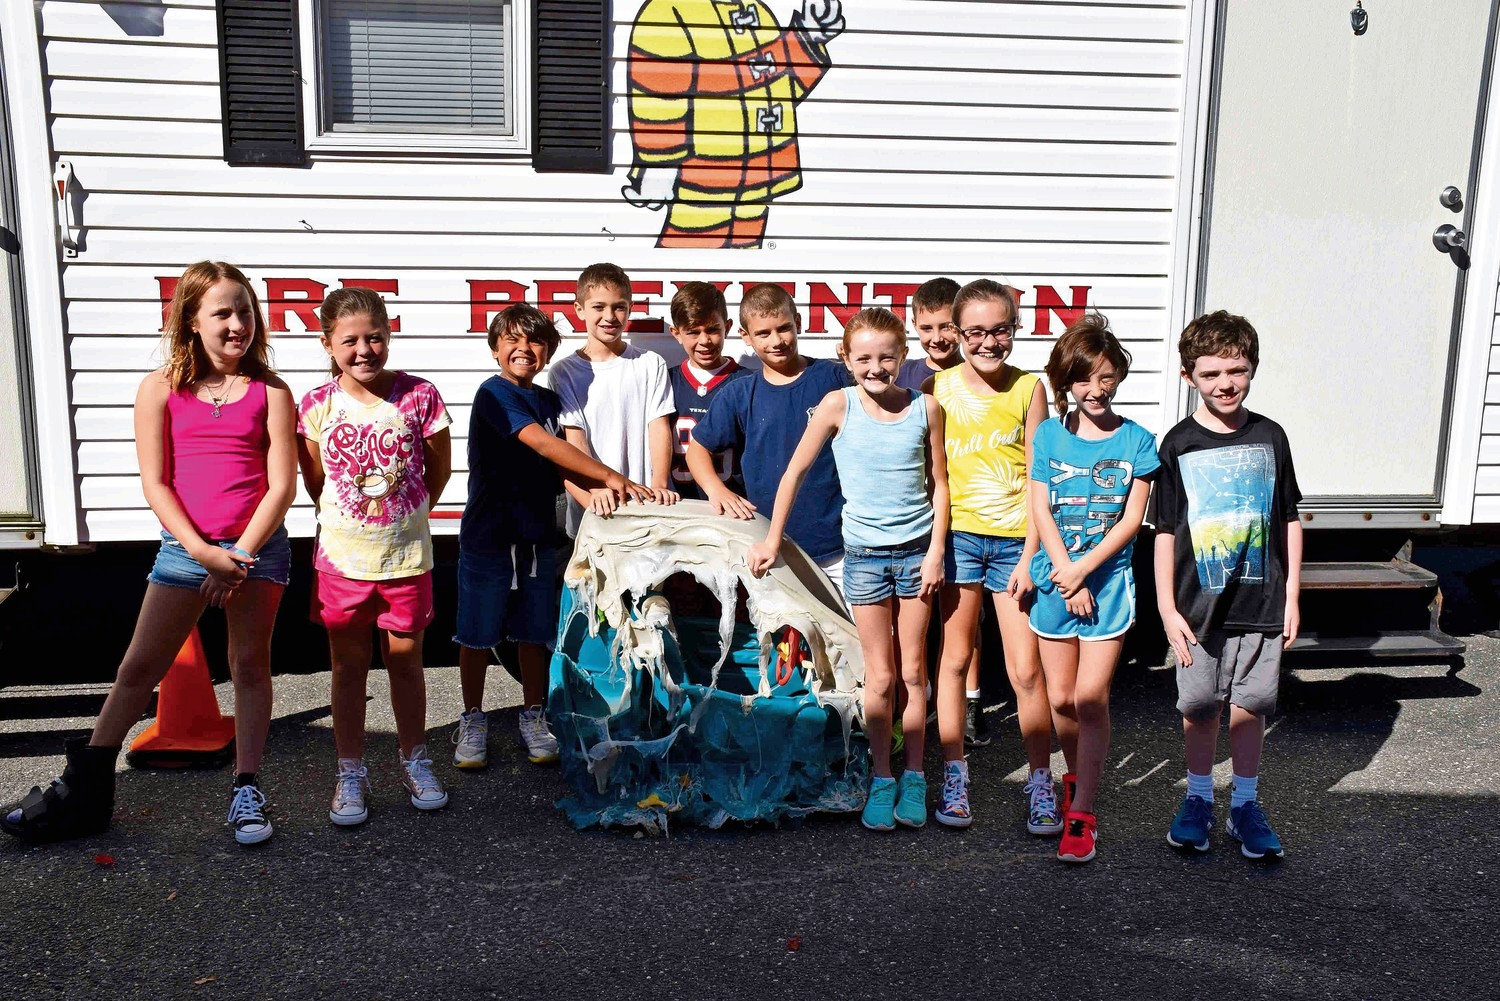 Lee Road Elementary School fourth-graders in Jackie Katz-Rabinoff's class practiced fire safety in a Smoke House on Sept. 28.